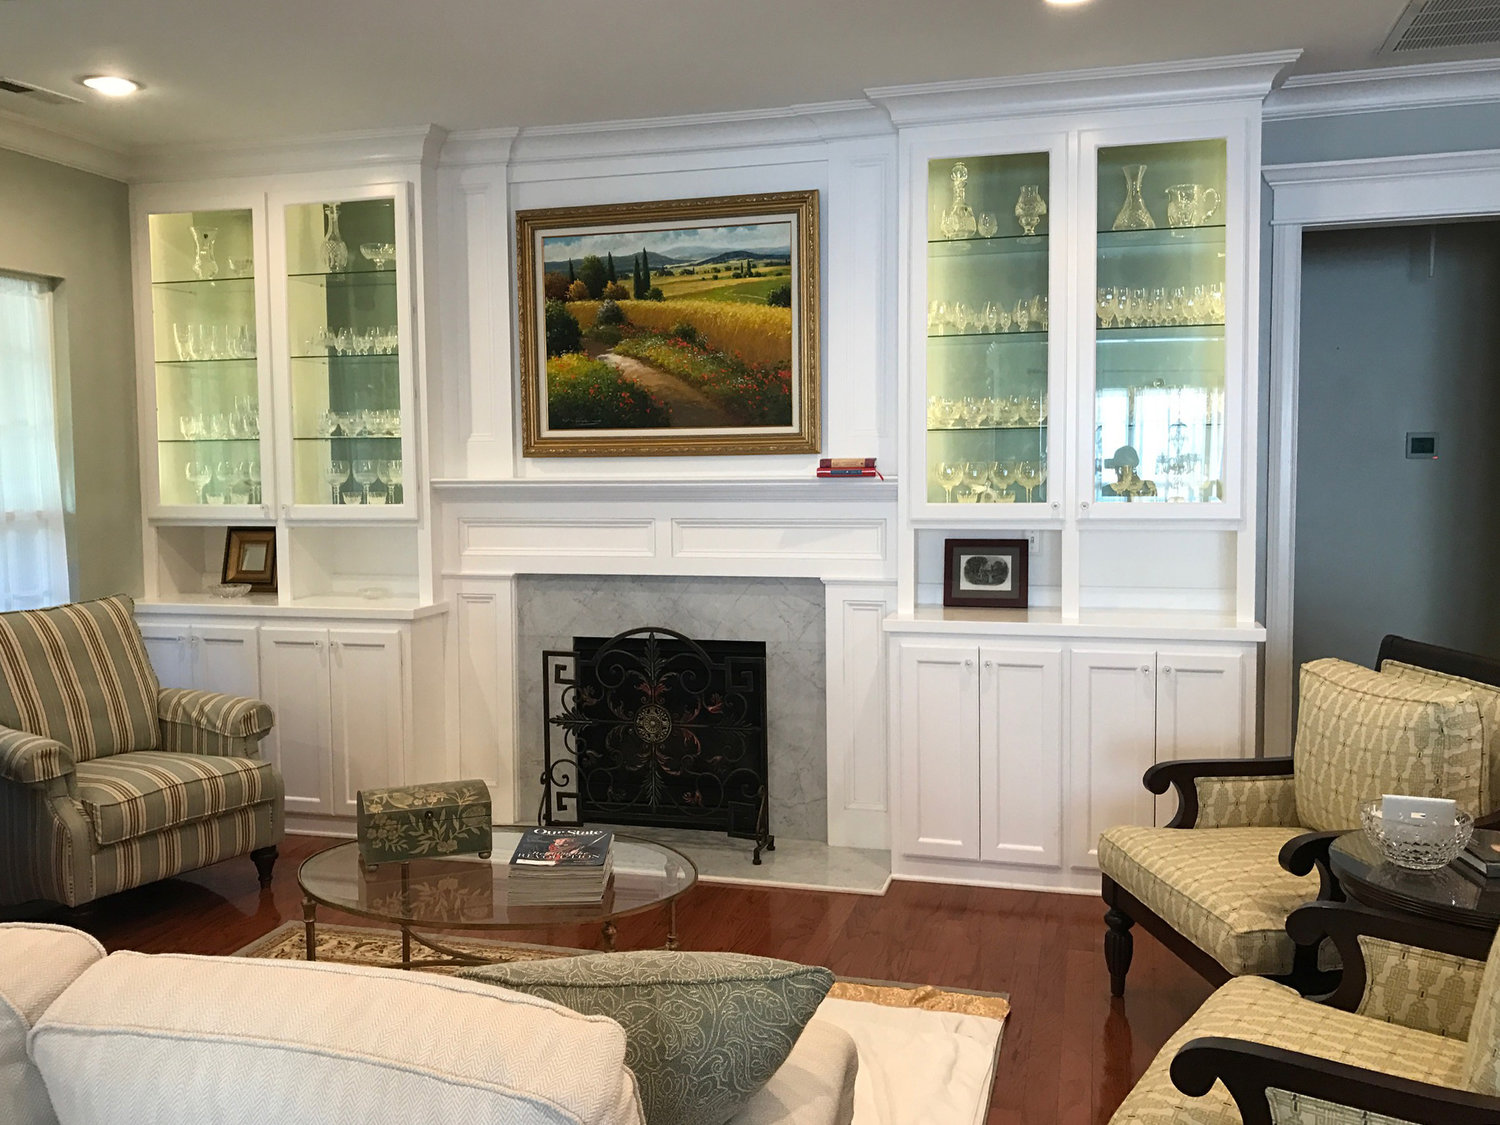 Fireplace Built-Ins with Shaker Doors, Glass Doors & Shelves, and Crown